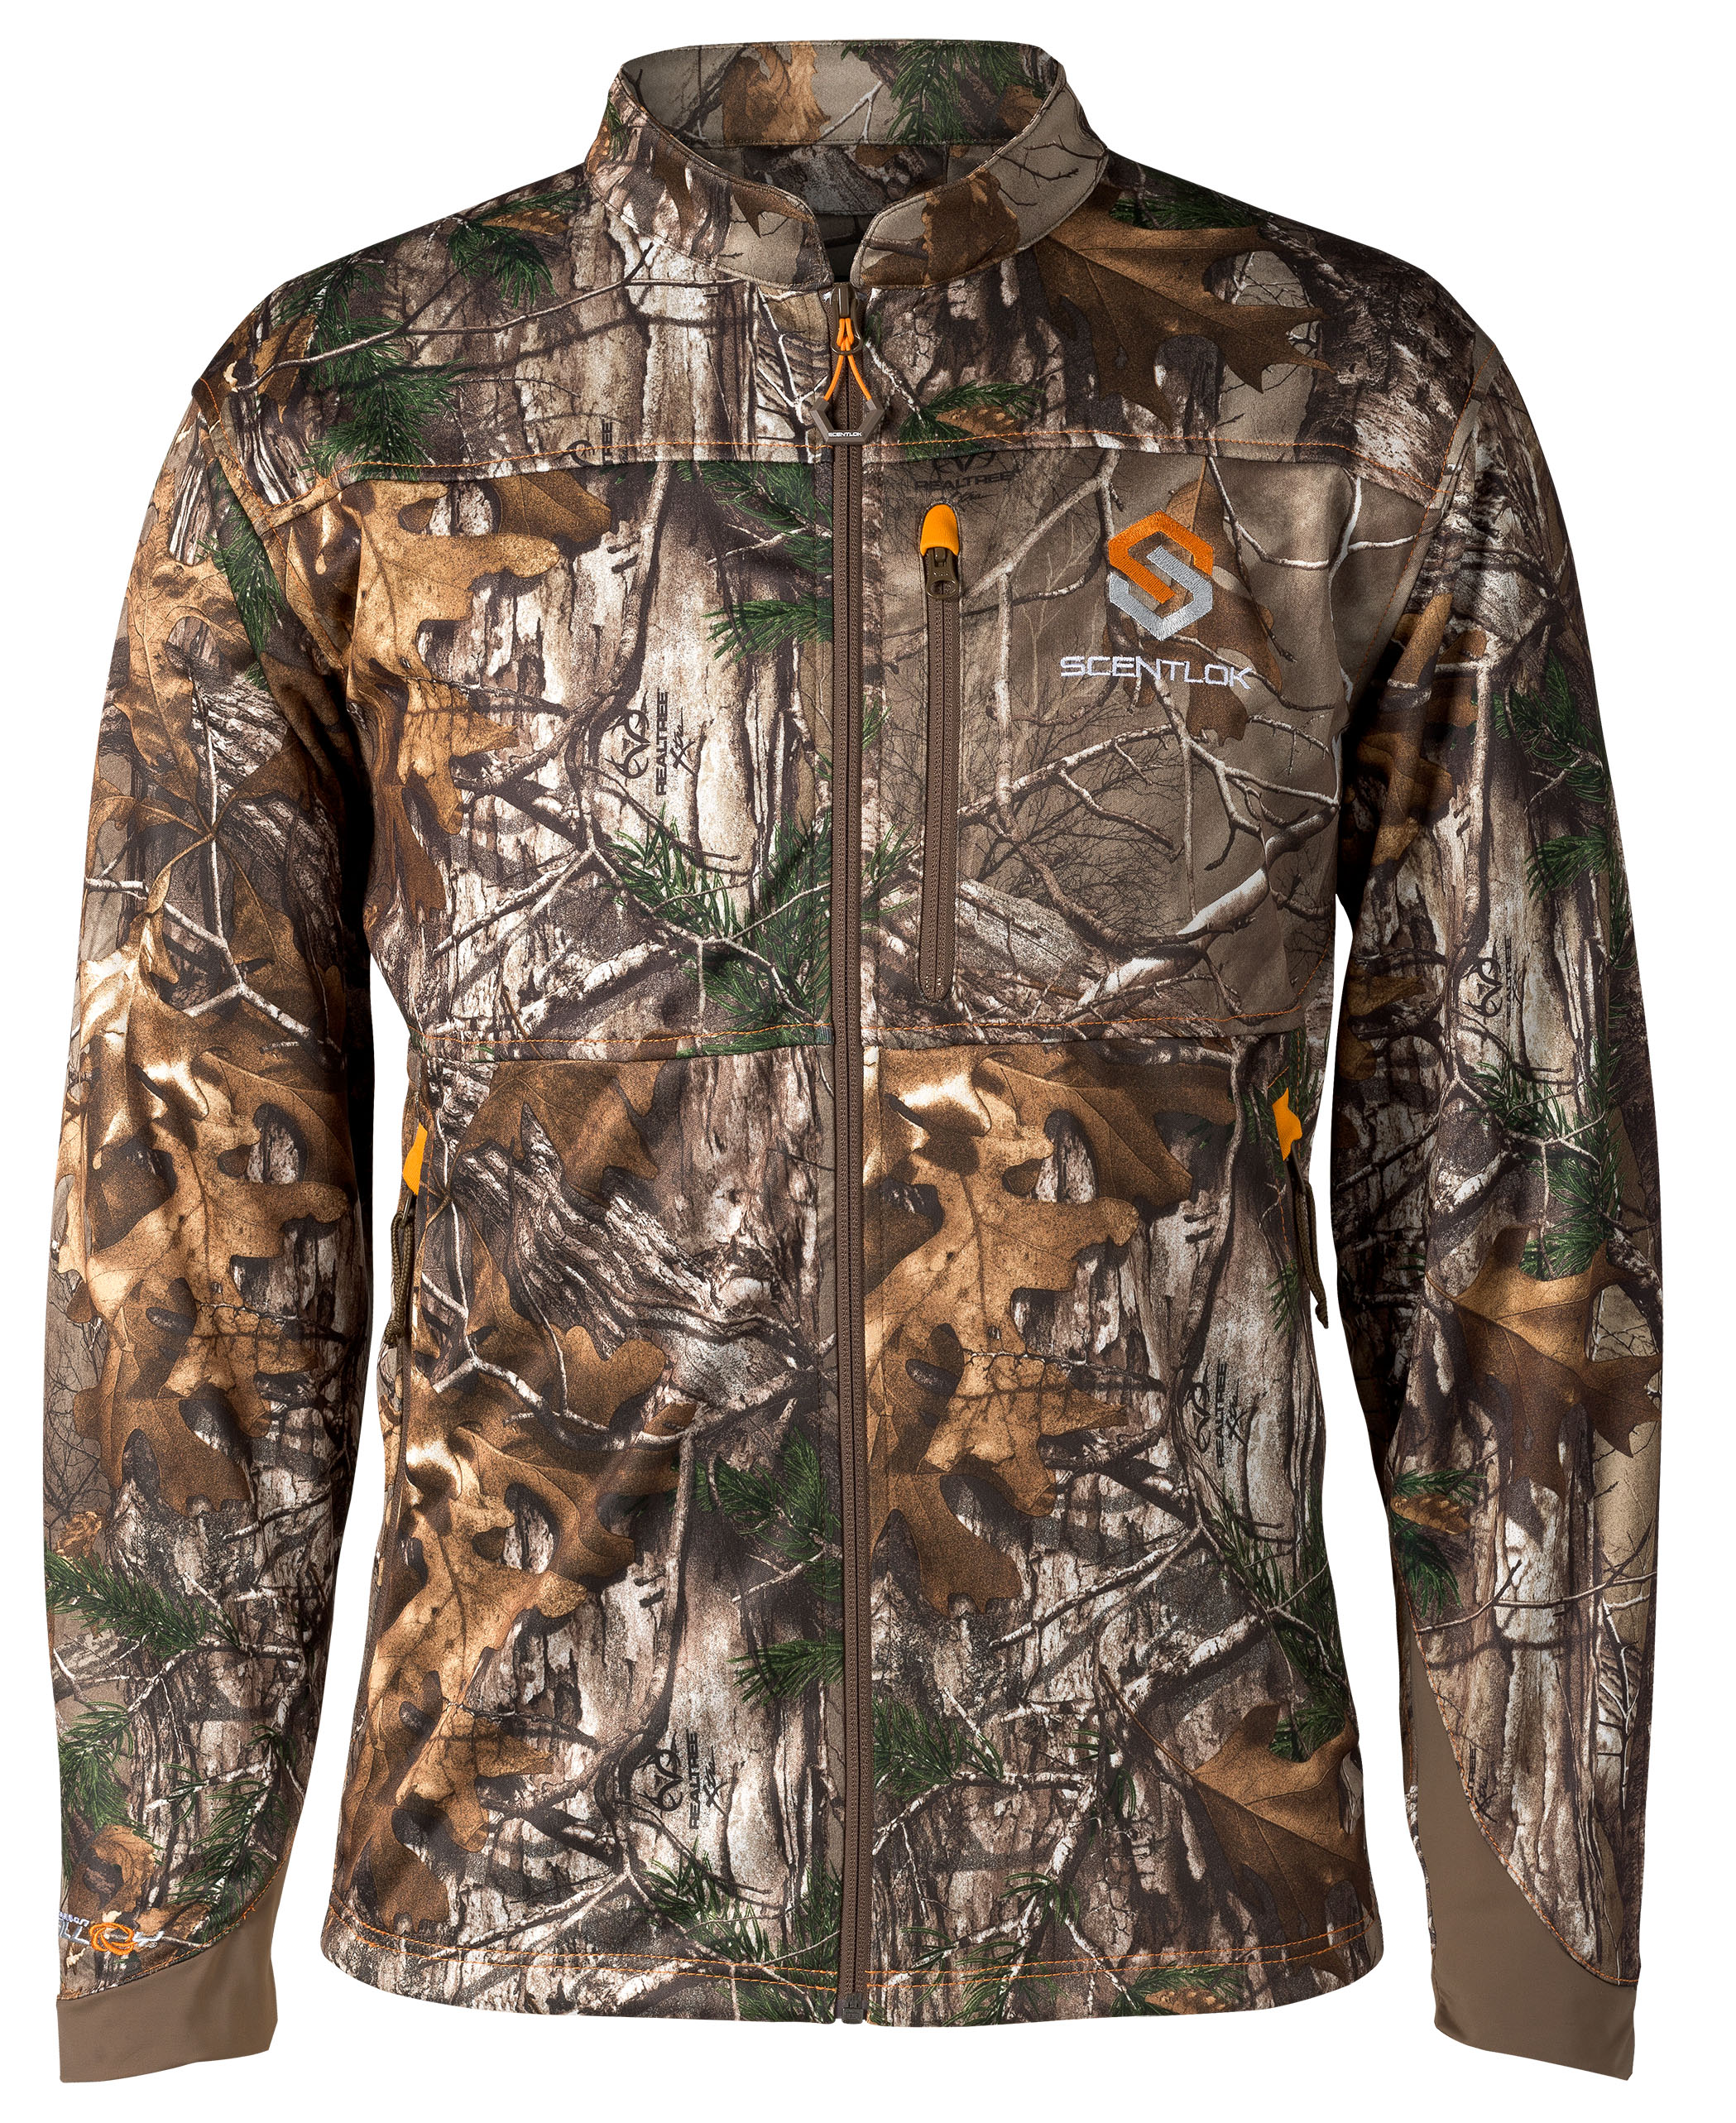 87411-16 Realtree APX